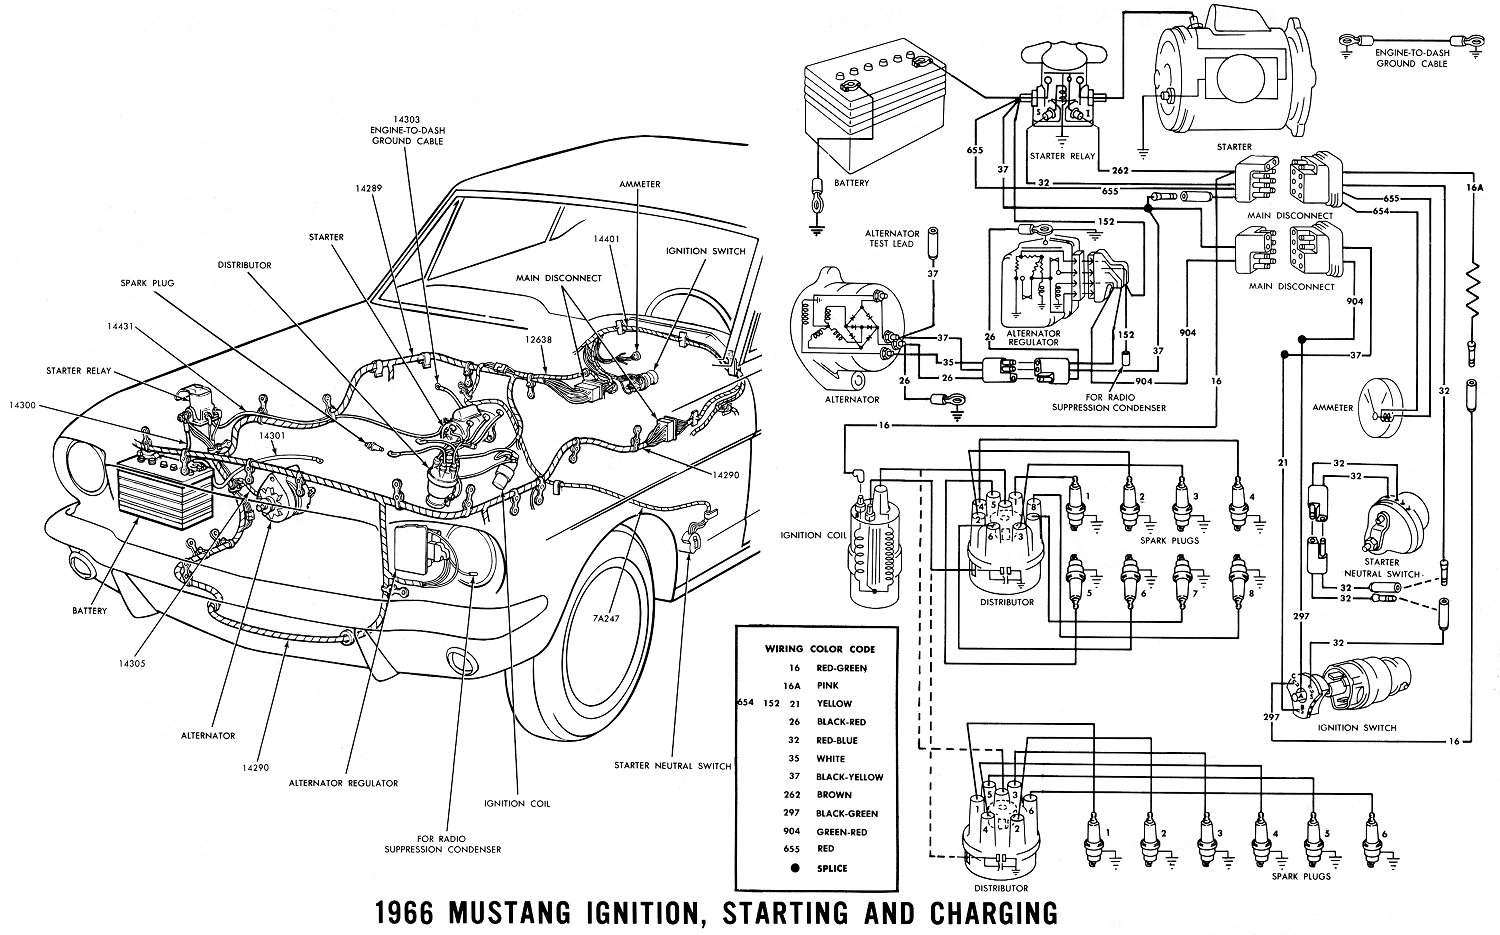 66ignit 1966 mustang wiring diagrams average joe restoration 1965 mustang alternator wiring diagram at bakdesigns.co